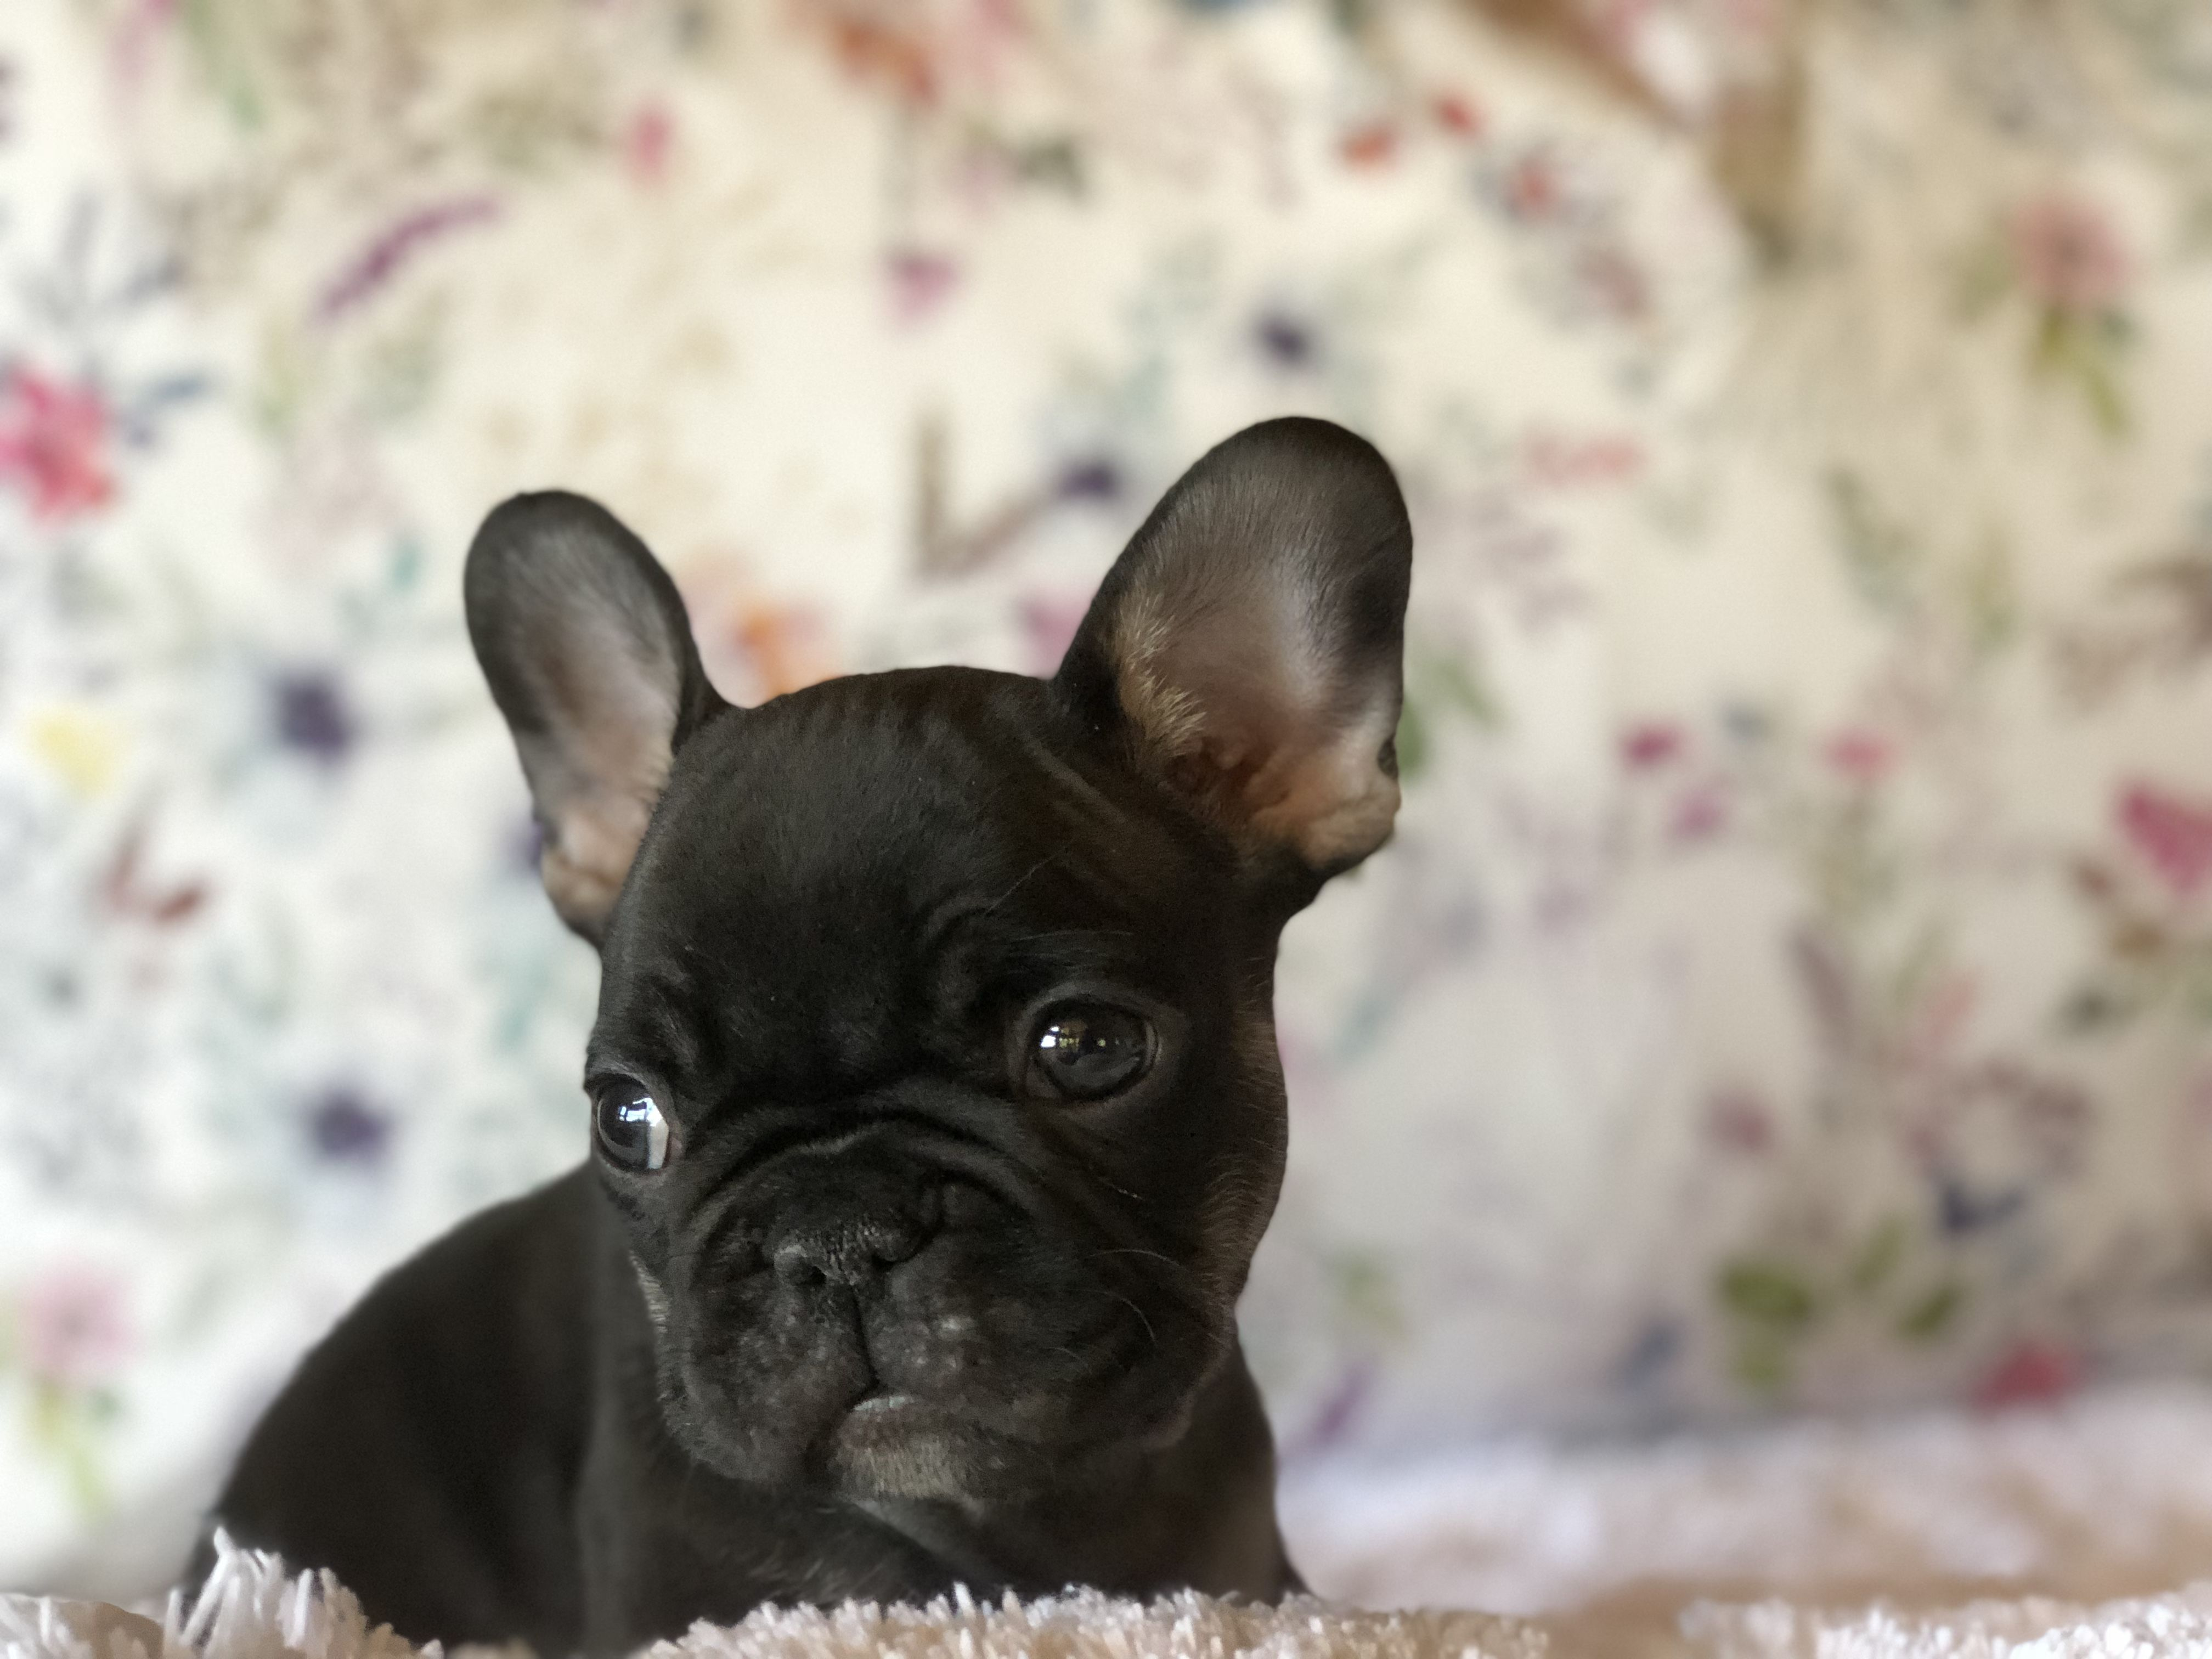 portrait of a French Bulldog puppy, black and tan